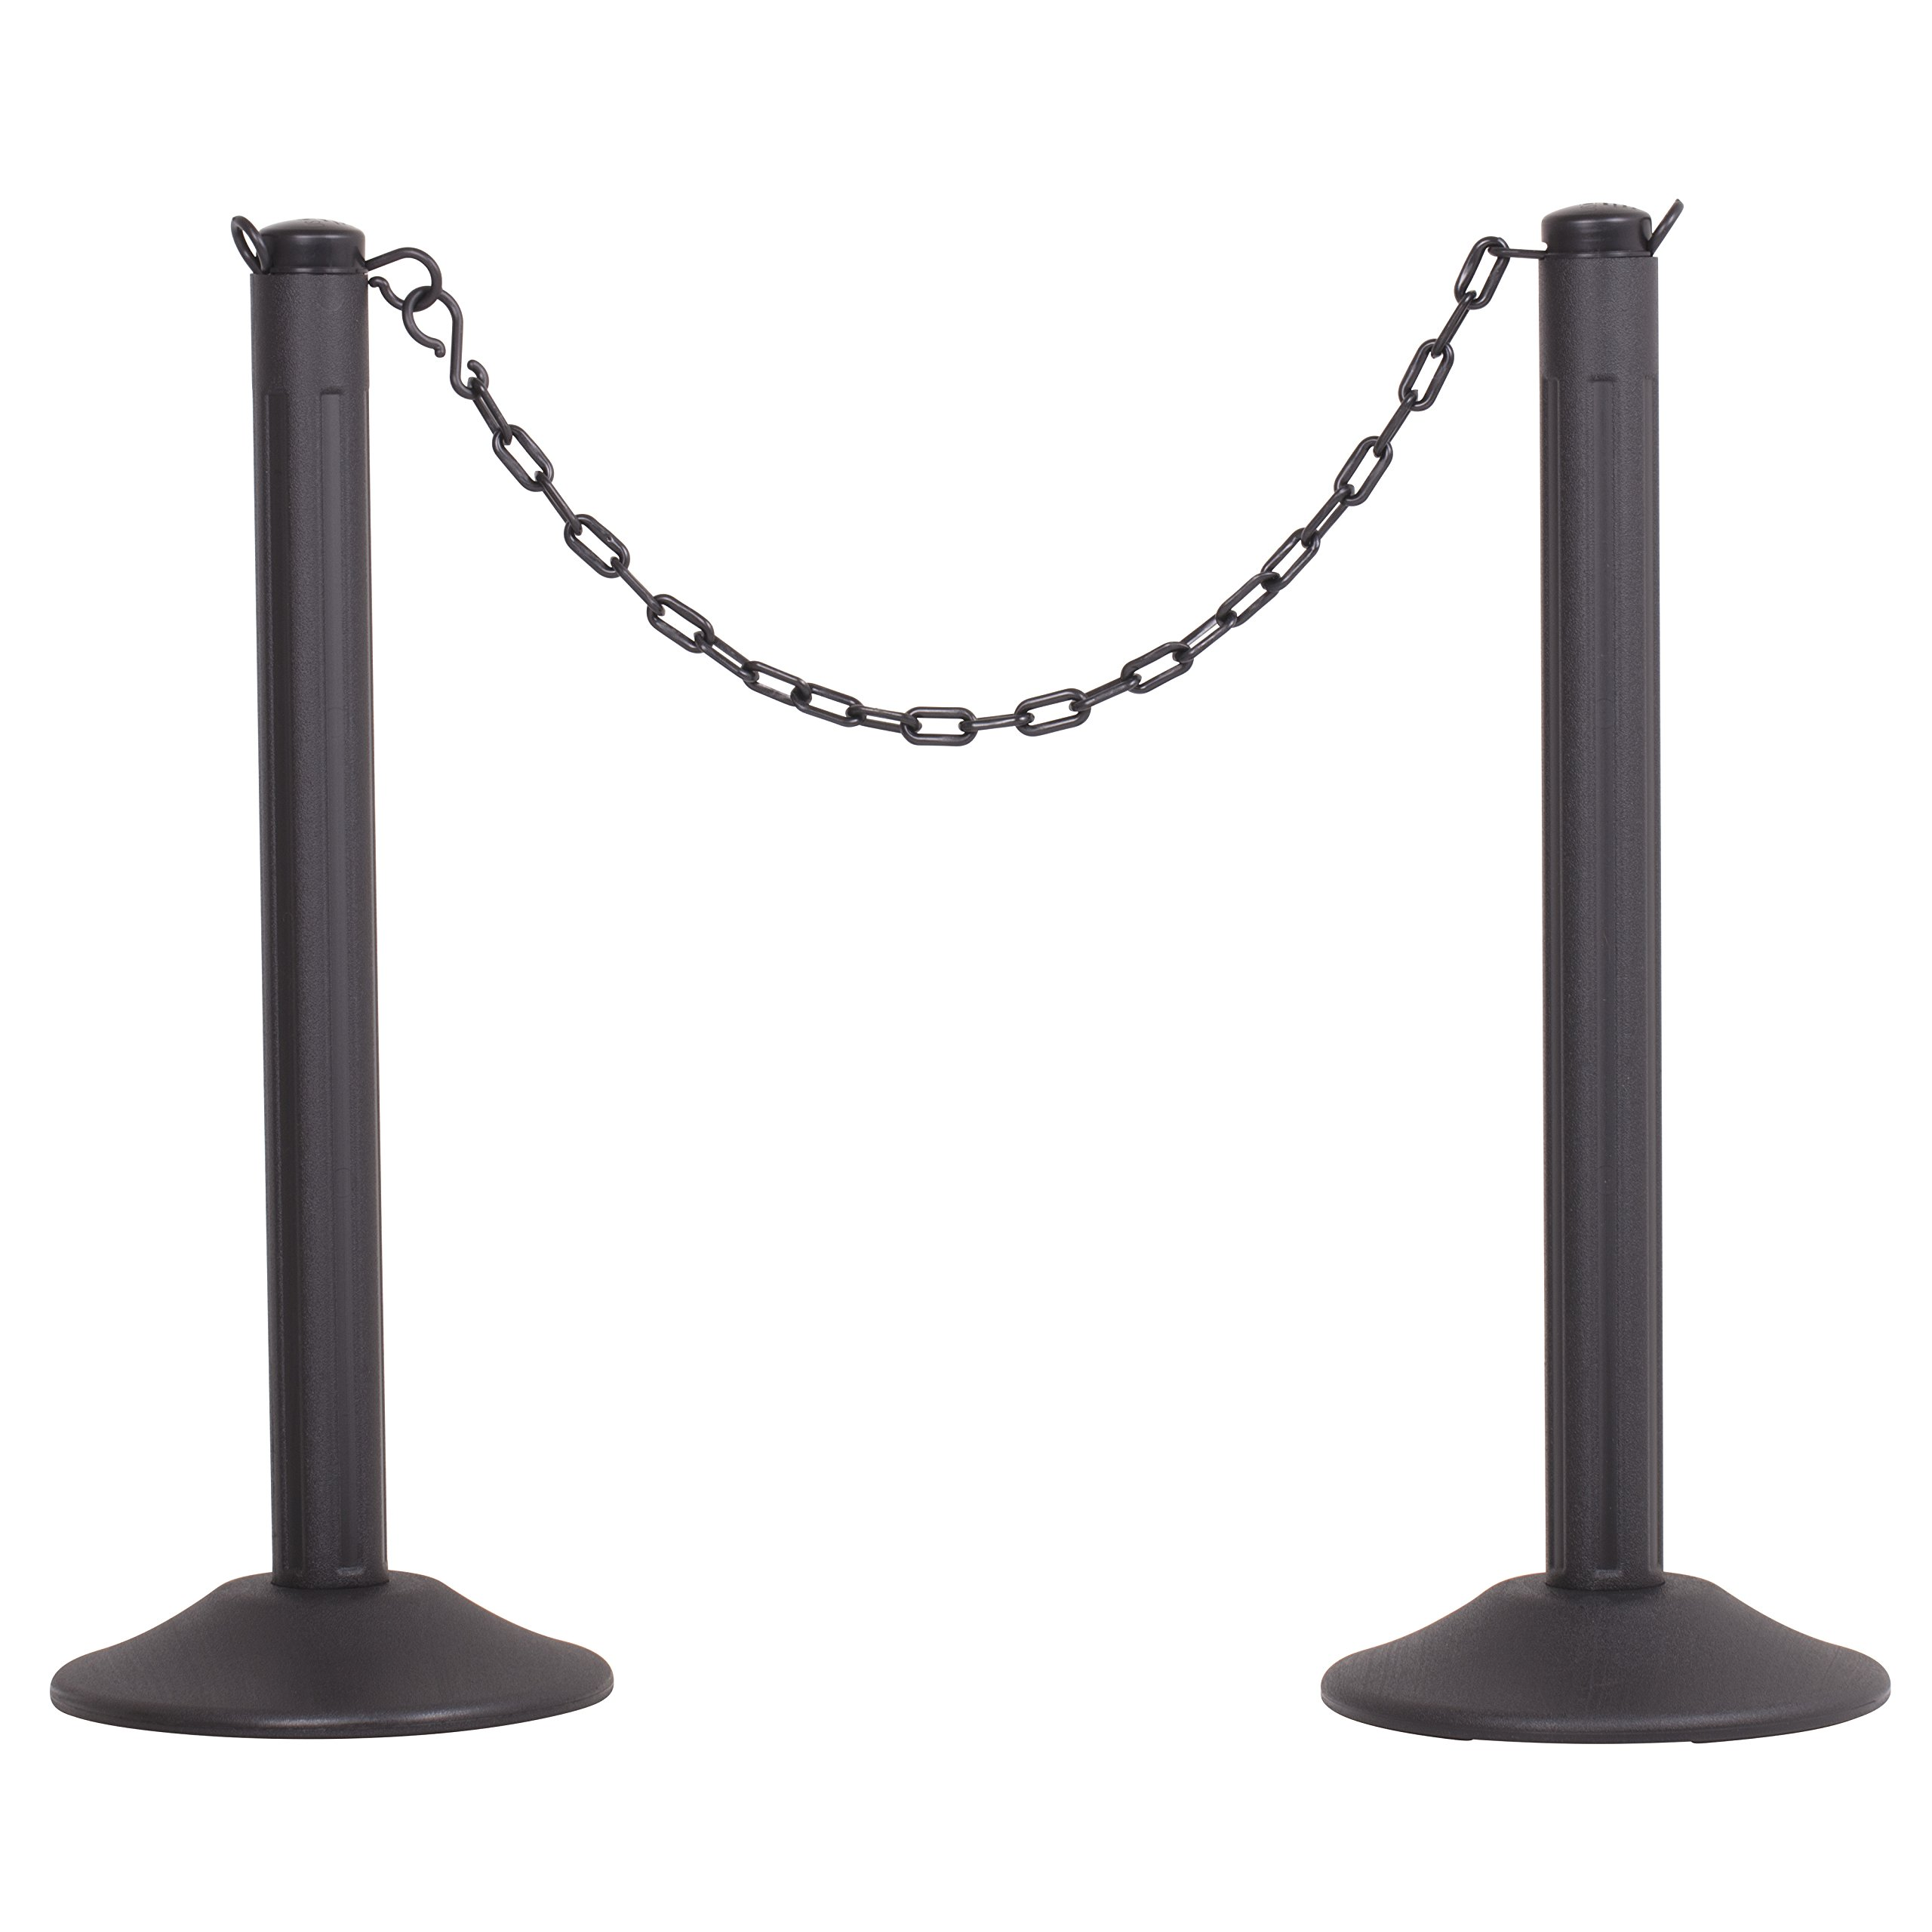 US Weight ChainBoss Indoor/Outdoor Stanchion – Weighted Base – Black Chain